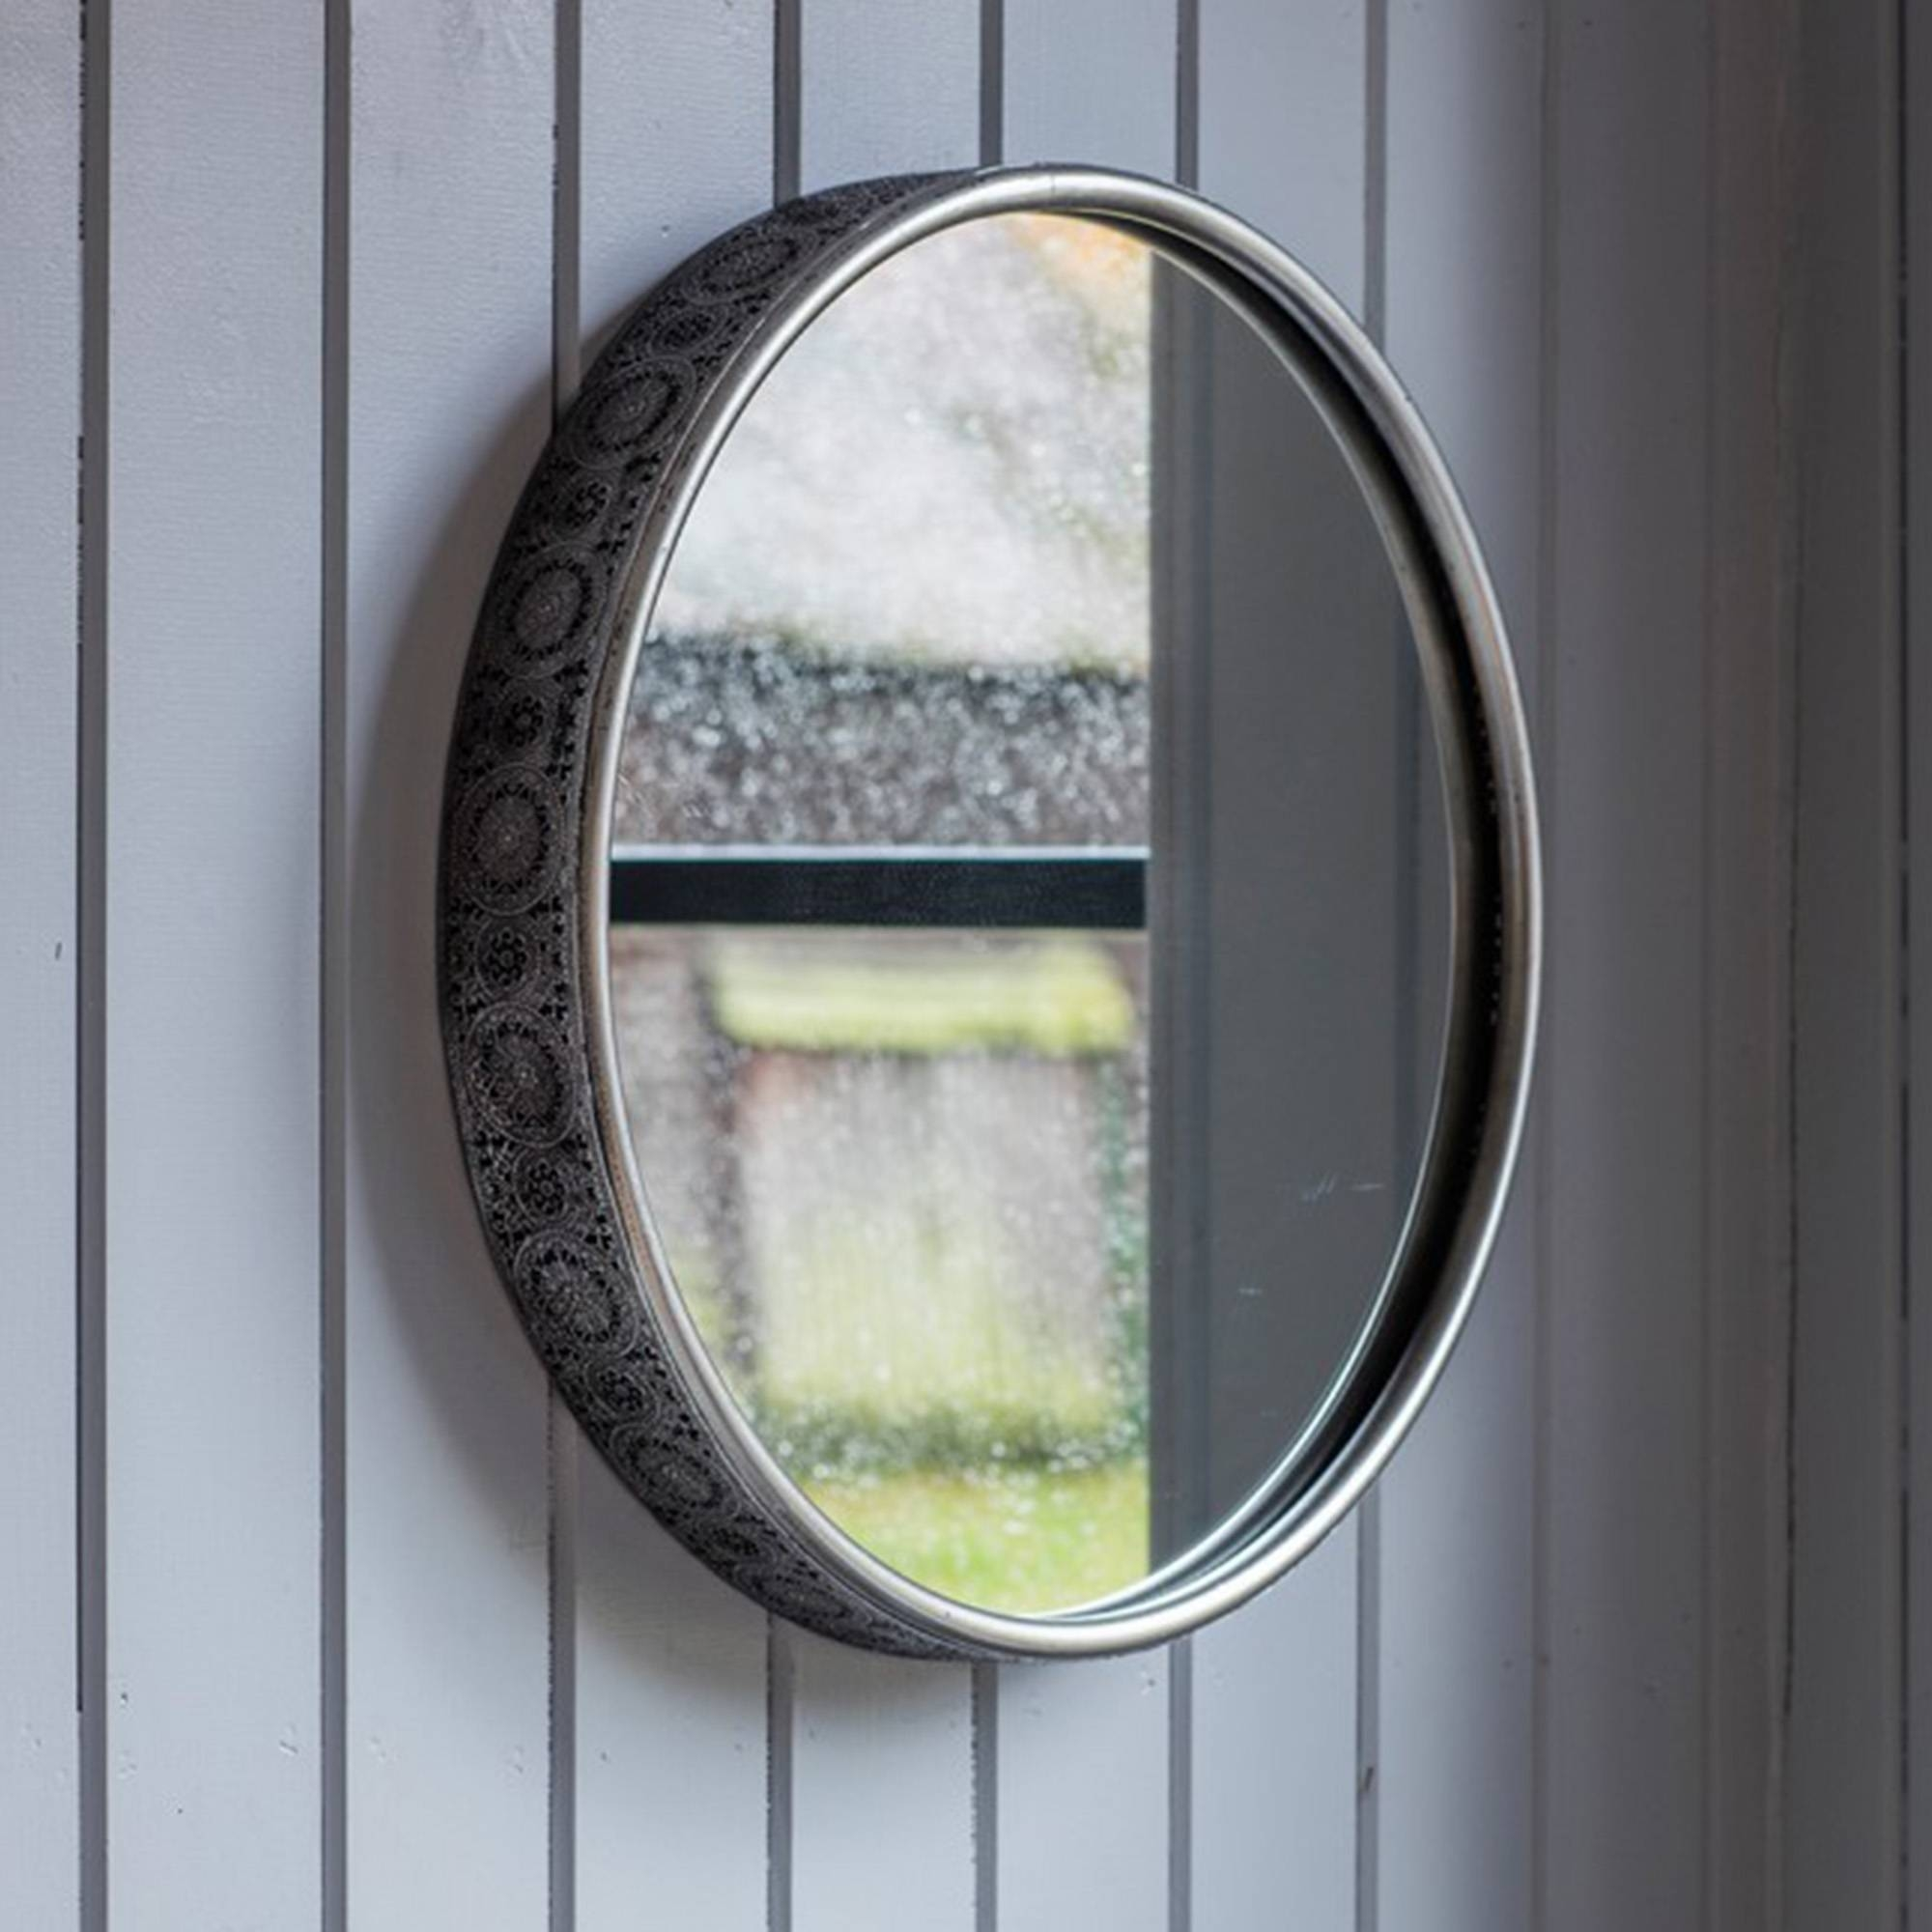 Uncategorized : Large Mirror Large Wood Framed Mirror Grey Wall within Round Bevelled Mirrors (Image 24 of 25)